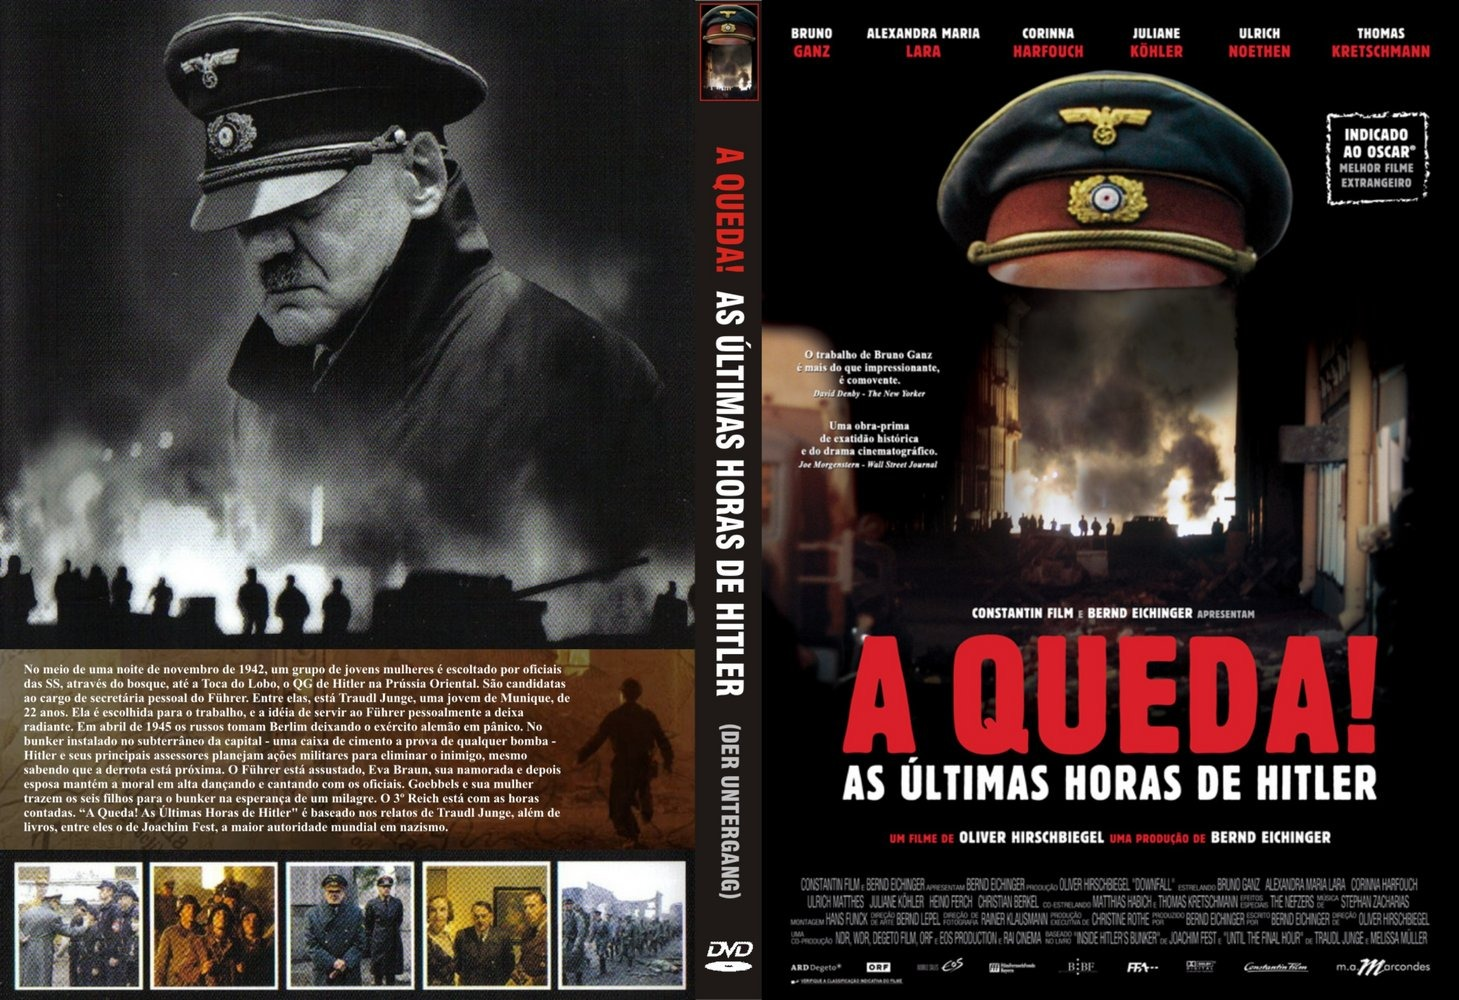 Download A Queda As Últimas Horas de Hitler DVDRip Dublado Download A Queda As Últimas Horas de Hitler DVDRip Dublado A 2BQueda 2BAs 2B 25C3 259Altimas 2BHoras 2Bde 2BHitler 2B  2BXANDAODOWNLOAD